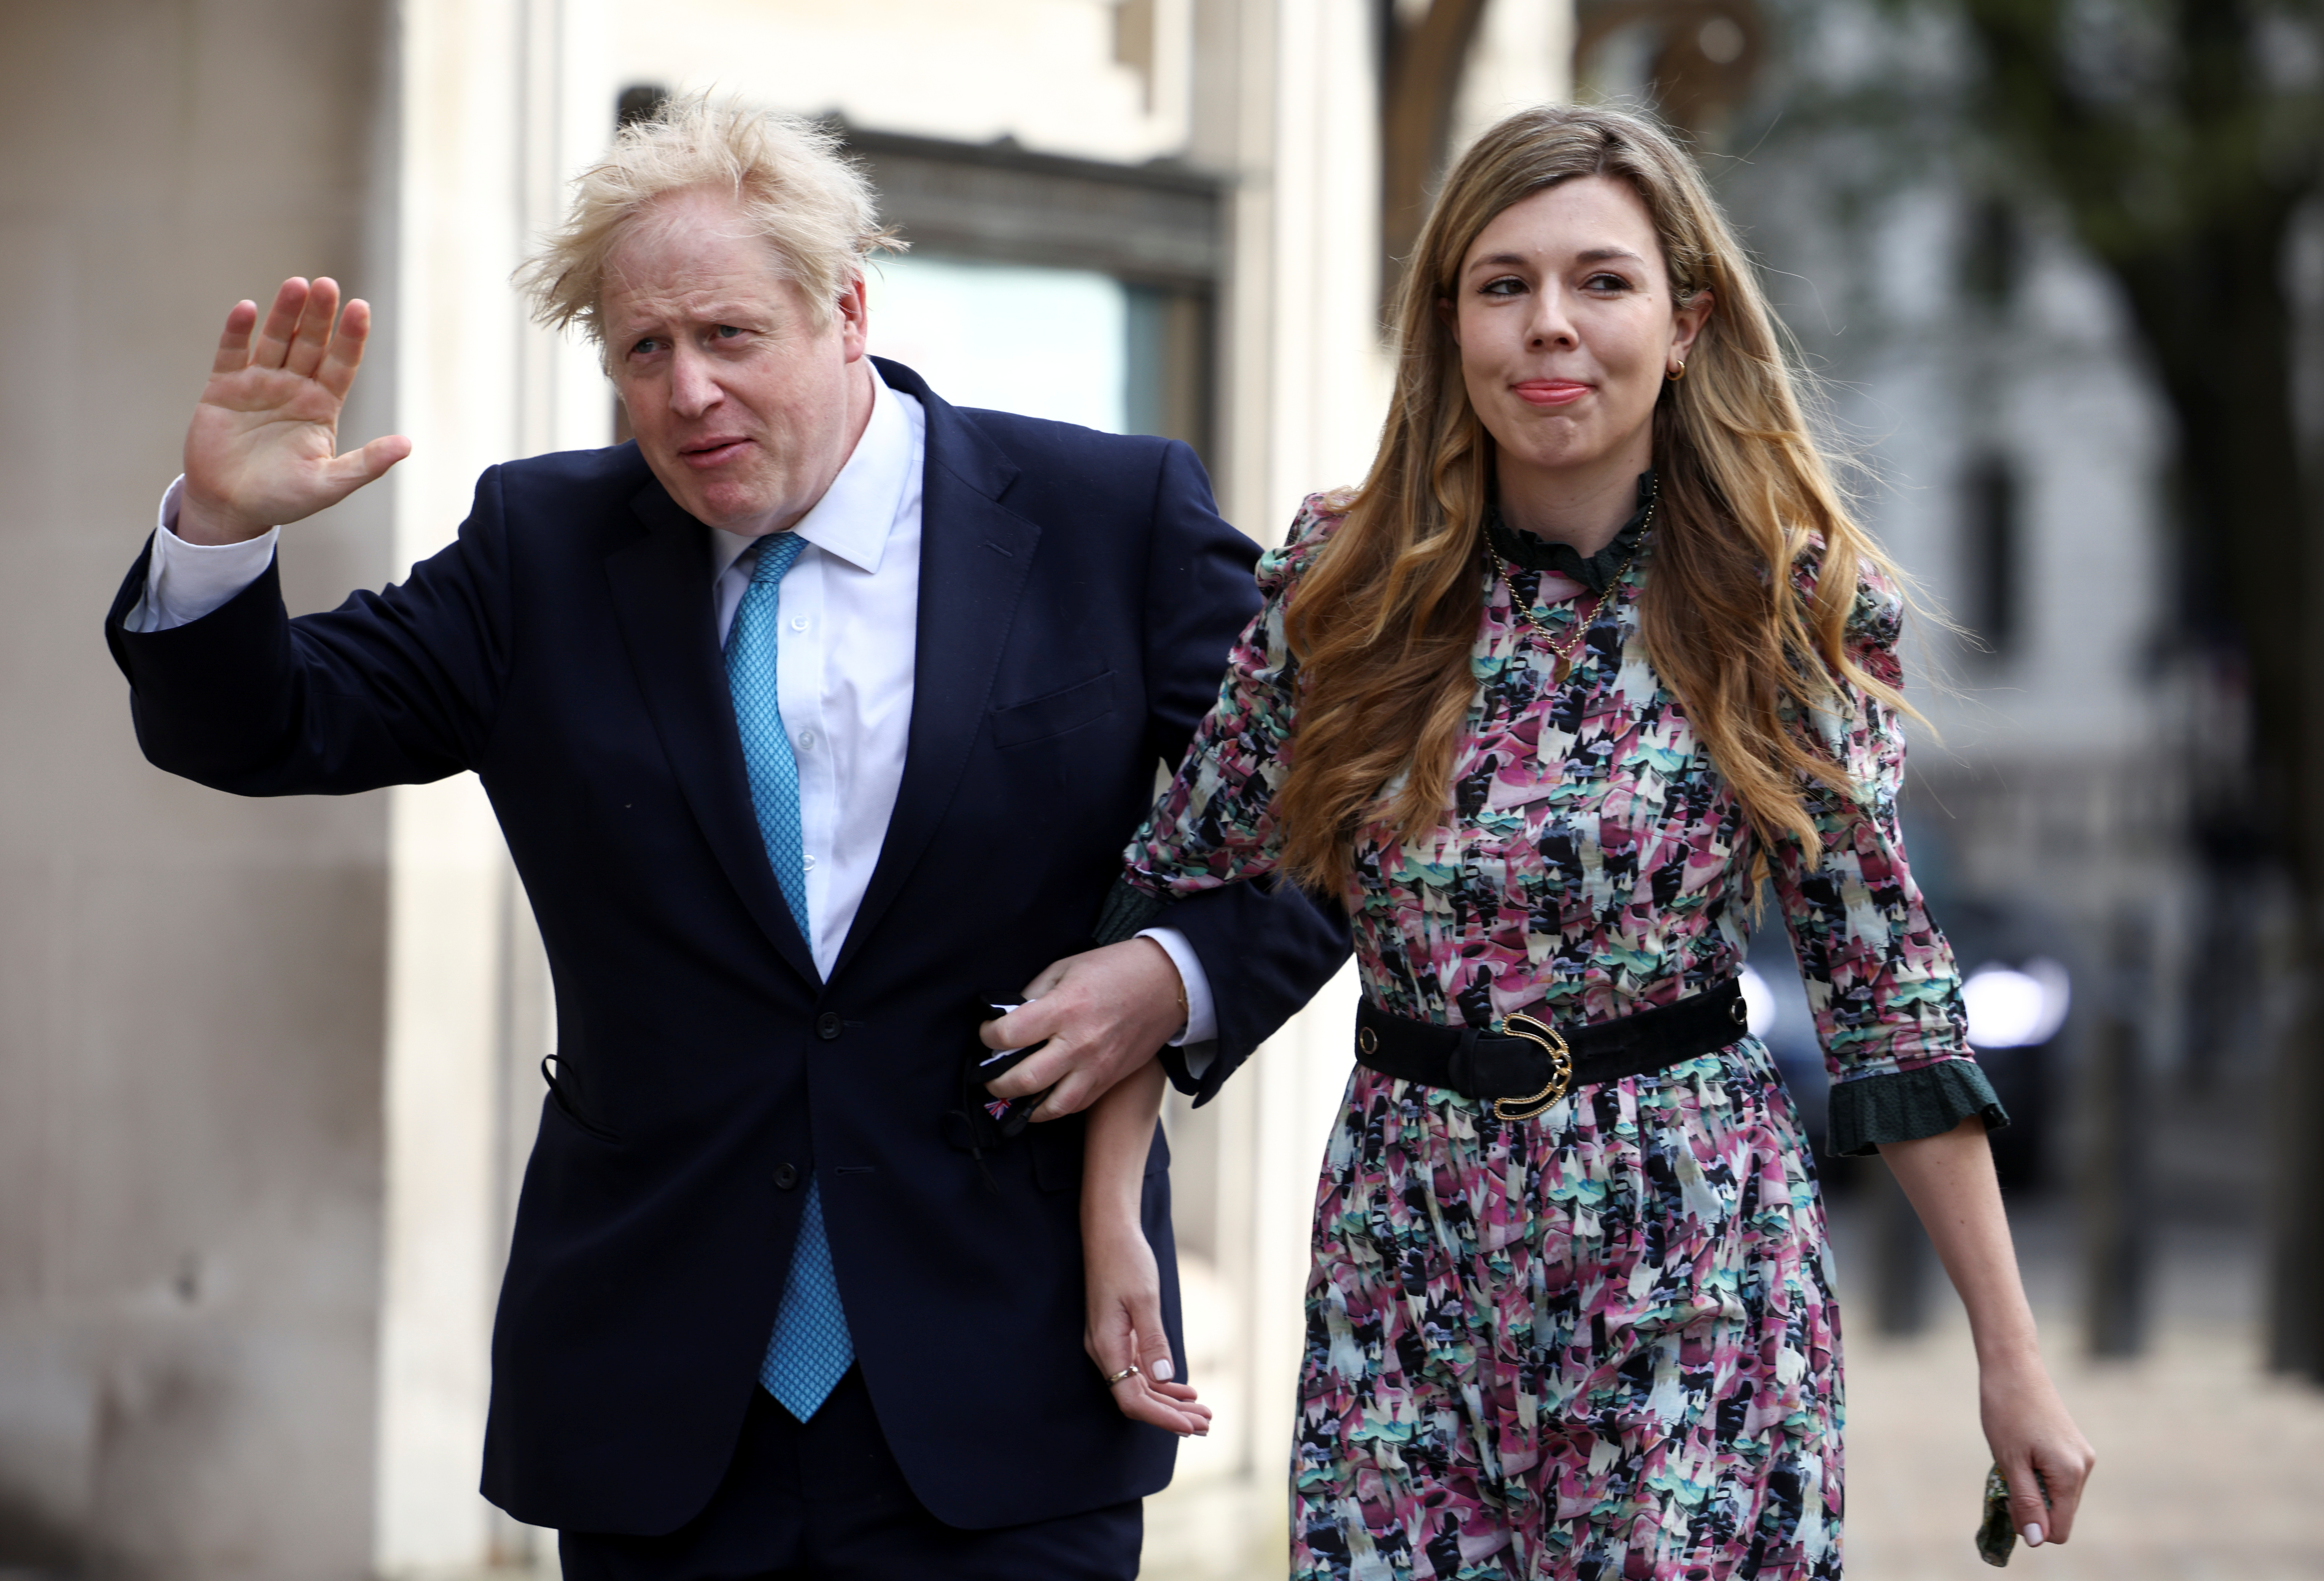 Britain's Prime Minister Boris Johnson and partner Carrie Symonds arrive at a Westminster polling station to vote, in London, Britain May 6, 2021. REUTERS/Henry Nicholls/Files